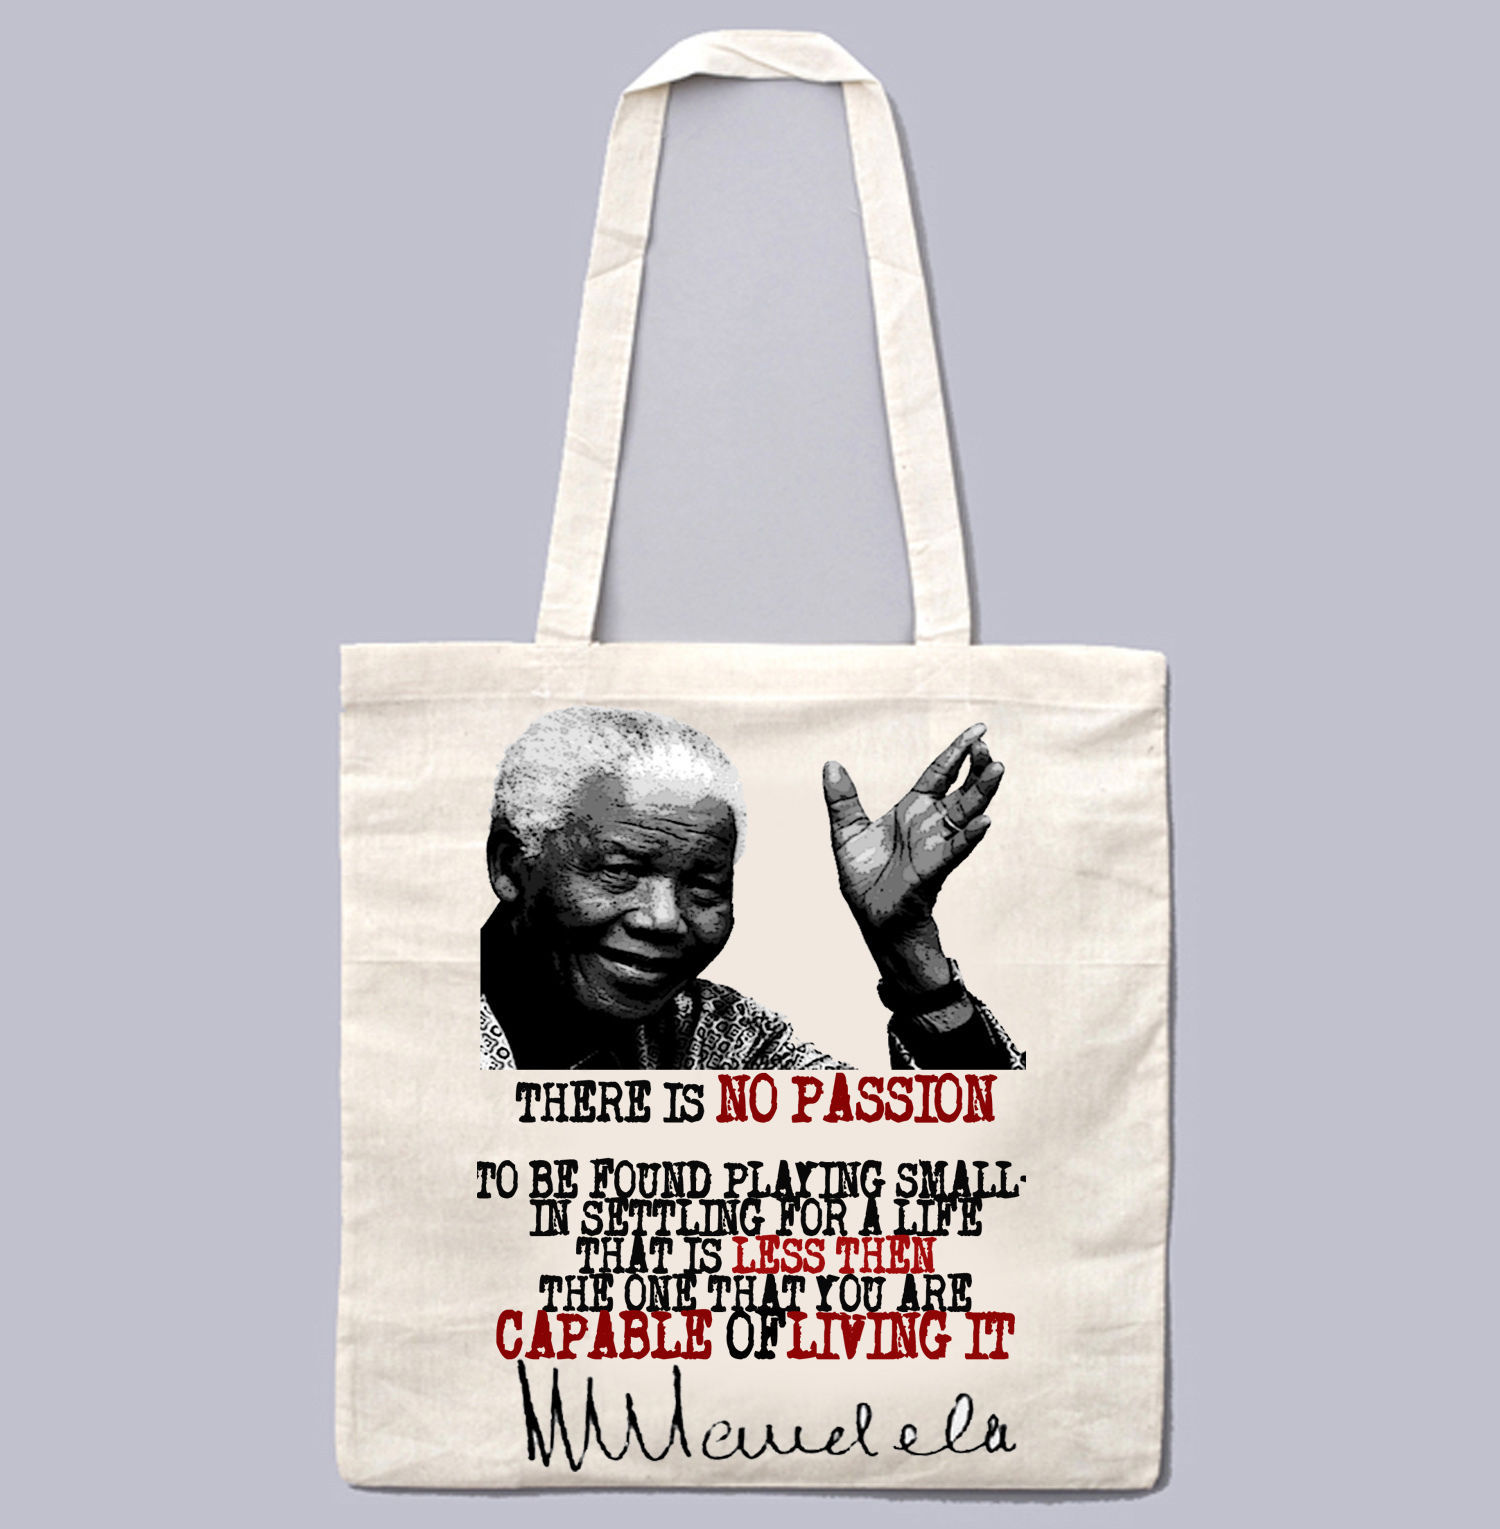 NELSON MANDELA PASSION QUOTE - NEW AMAZING GRAPHIC WHITE HAND BAG/TOTE BAG